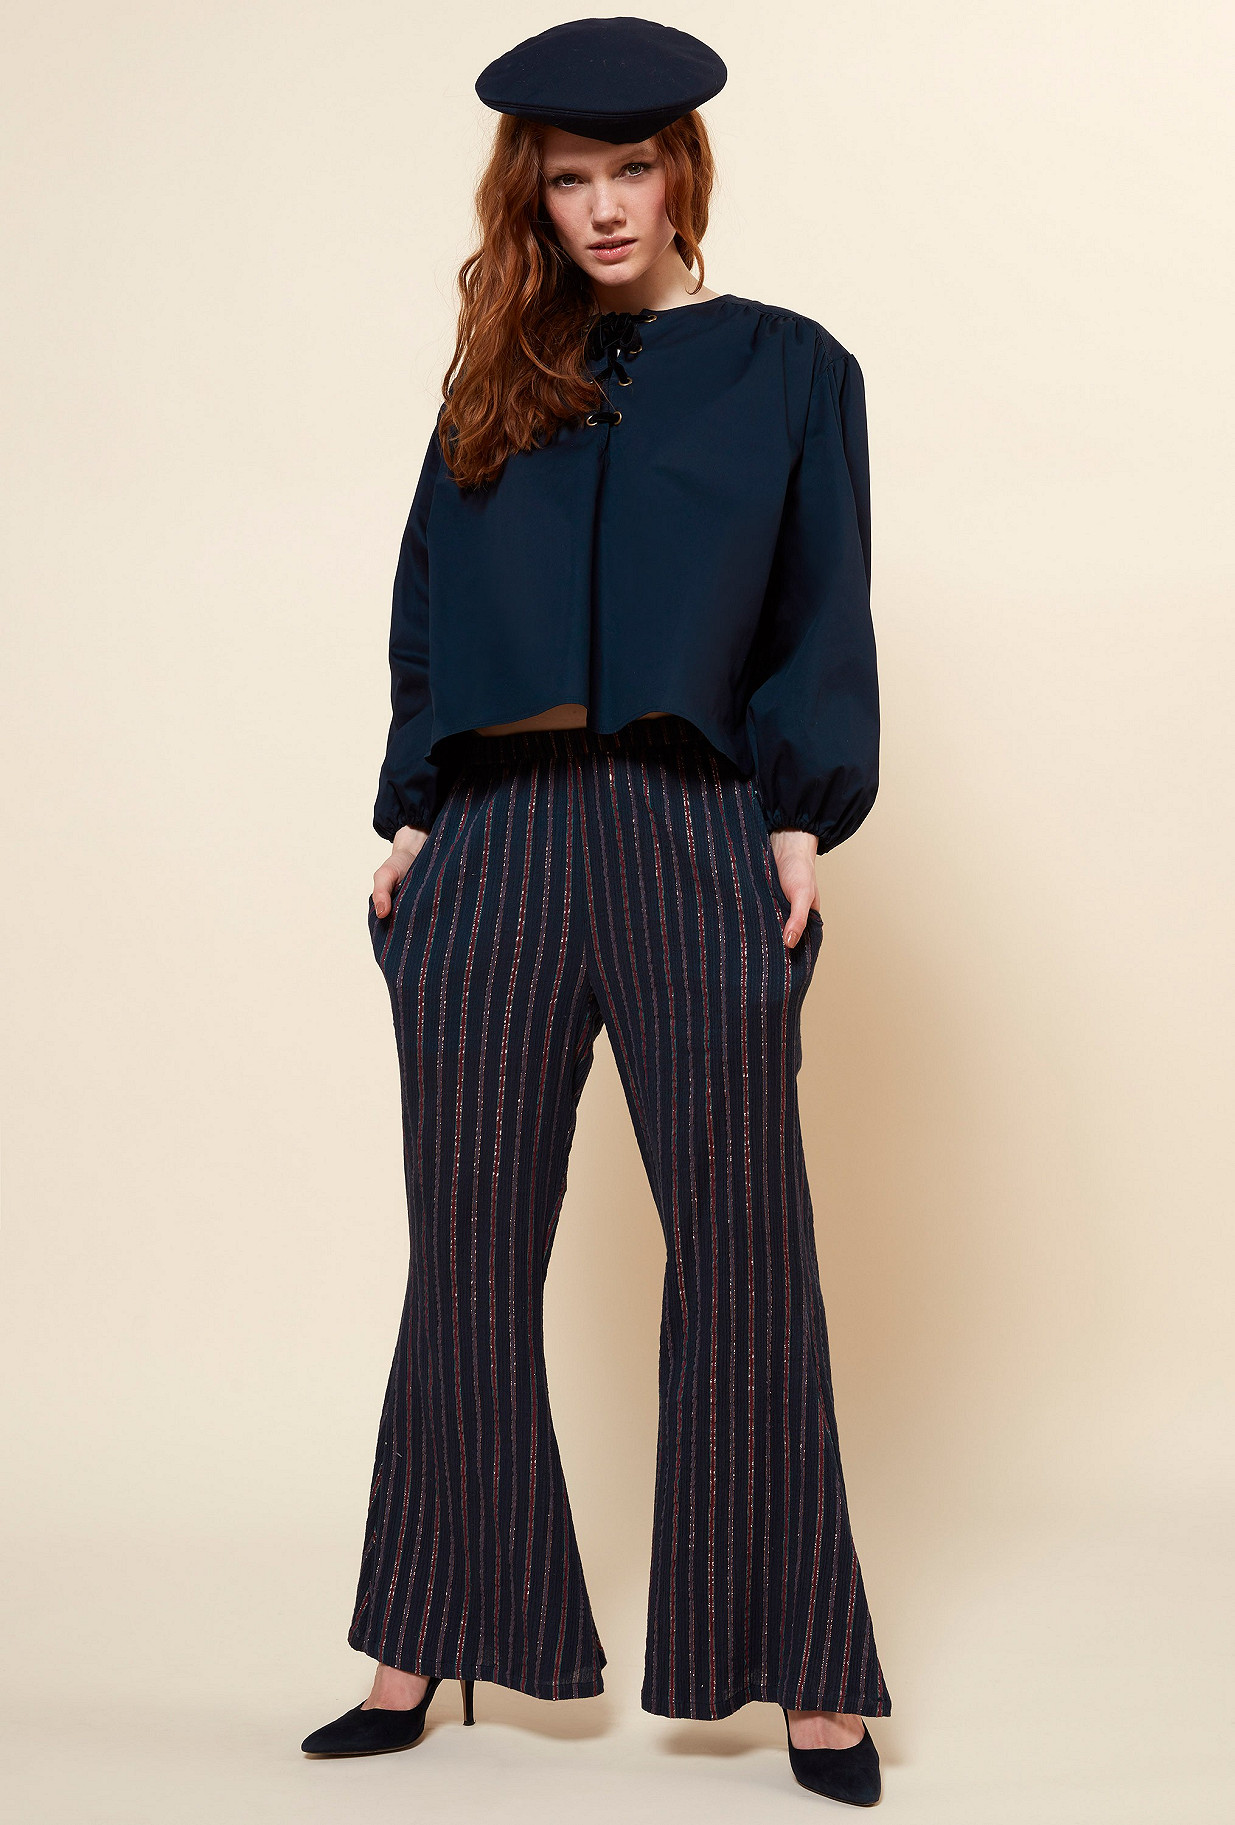 Navy Blouse Graham Mes Demoiselles Paris